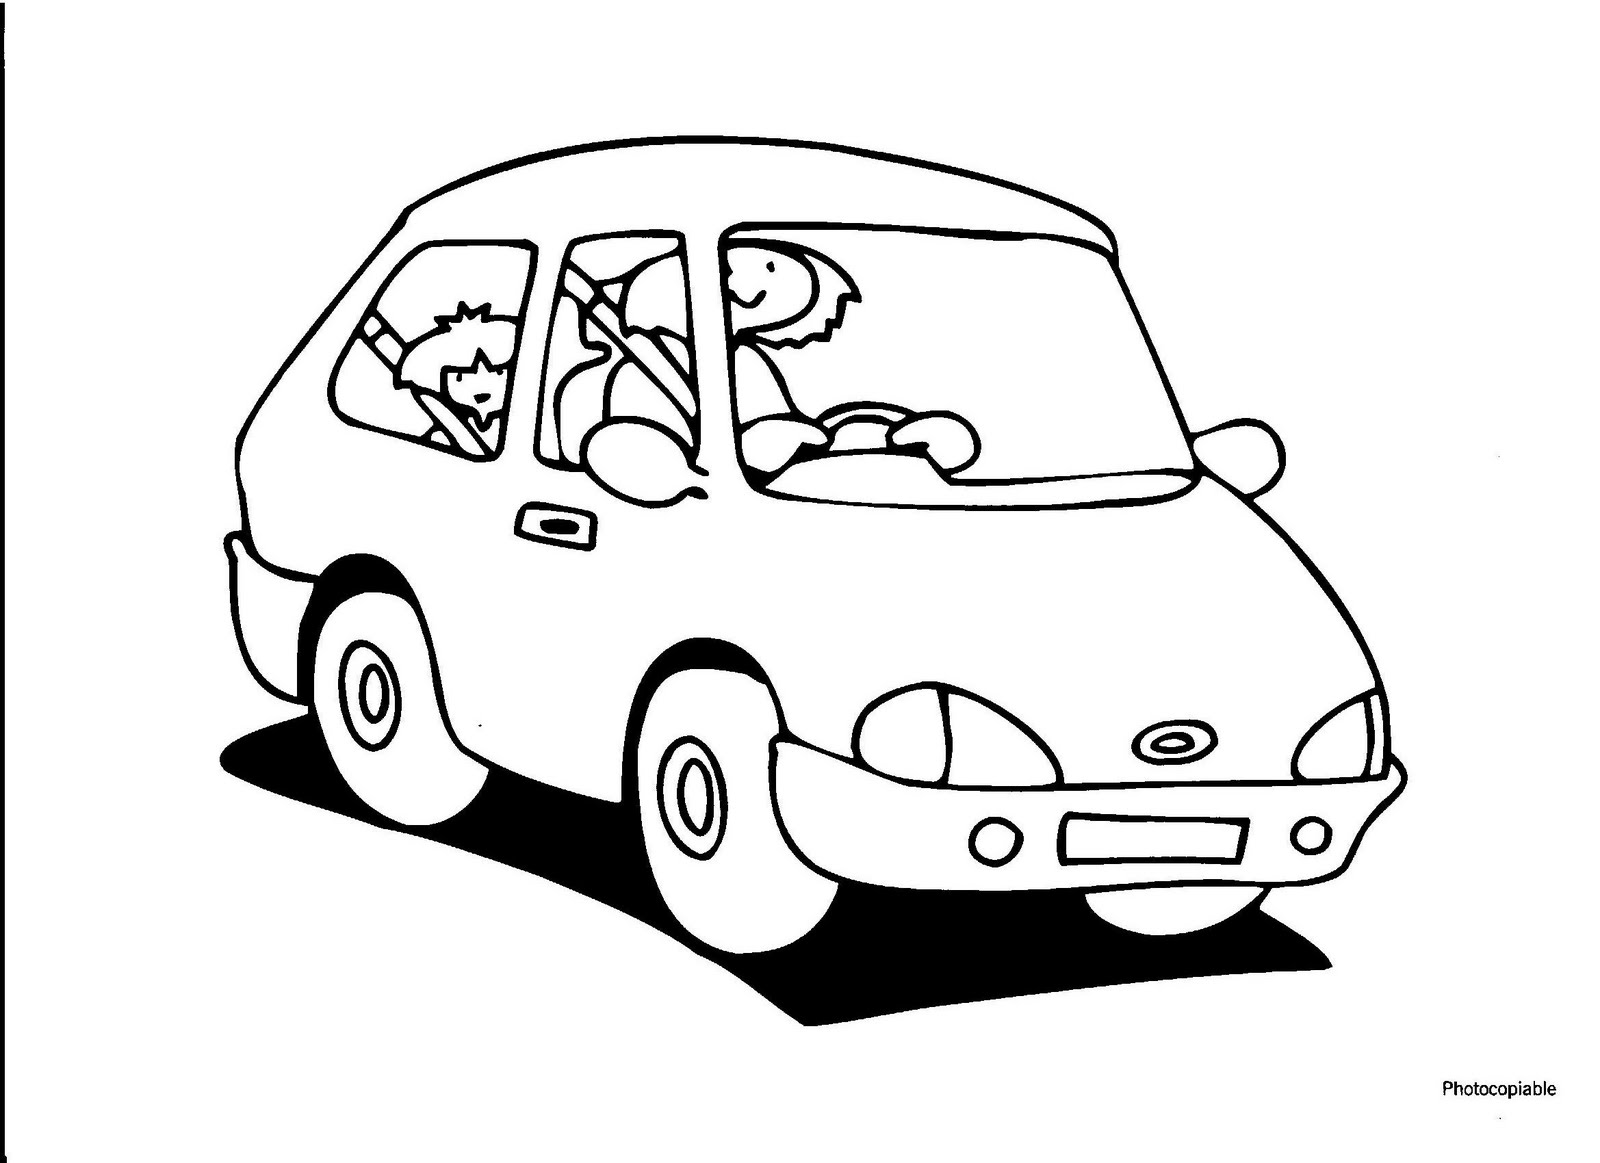 road safety images black and white